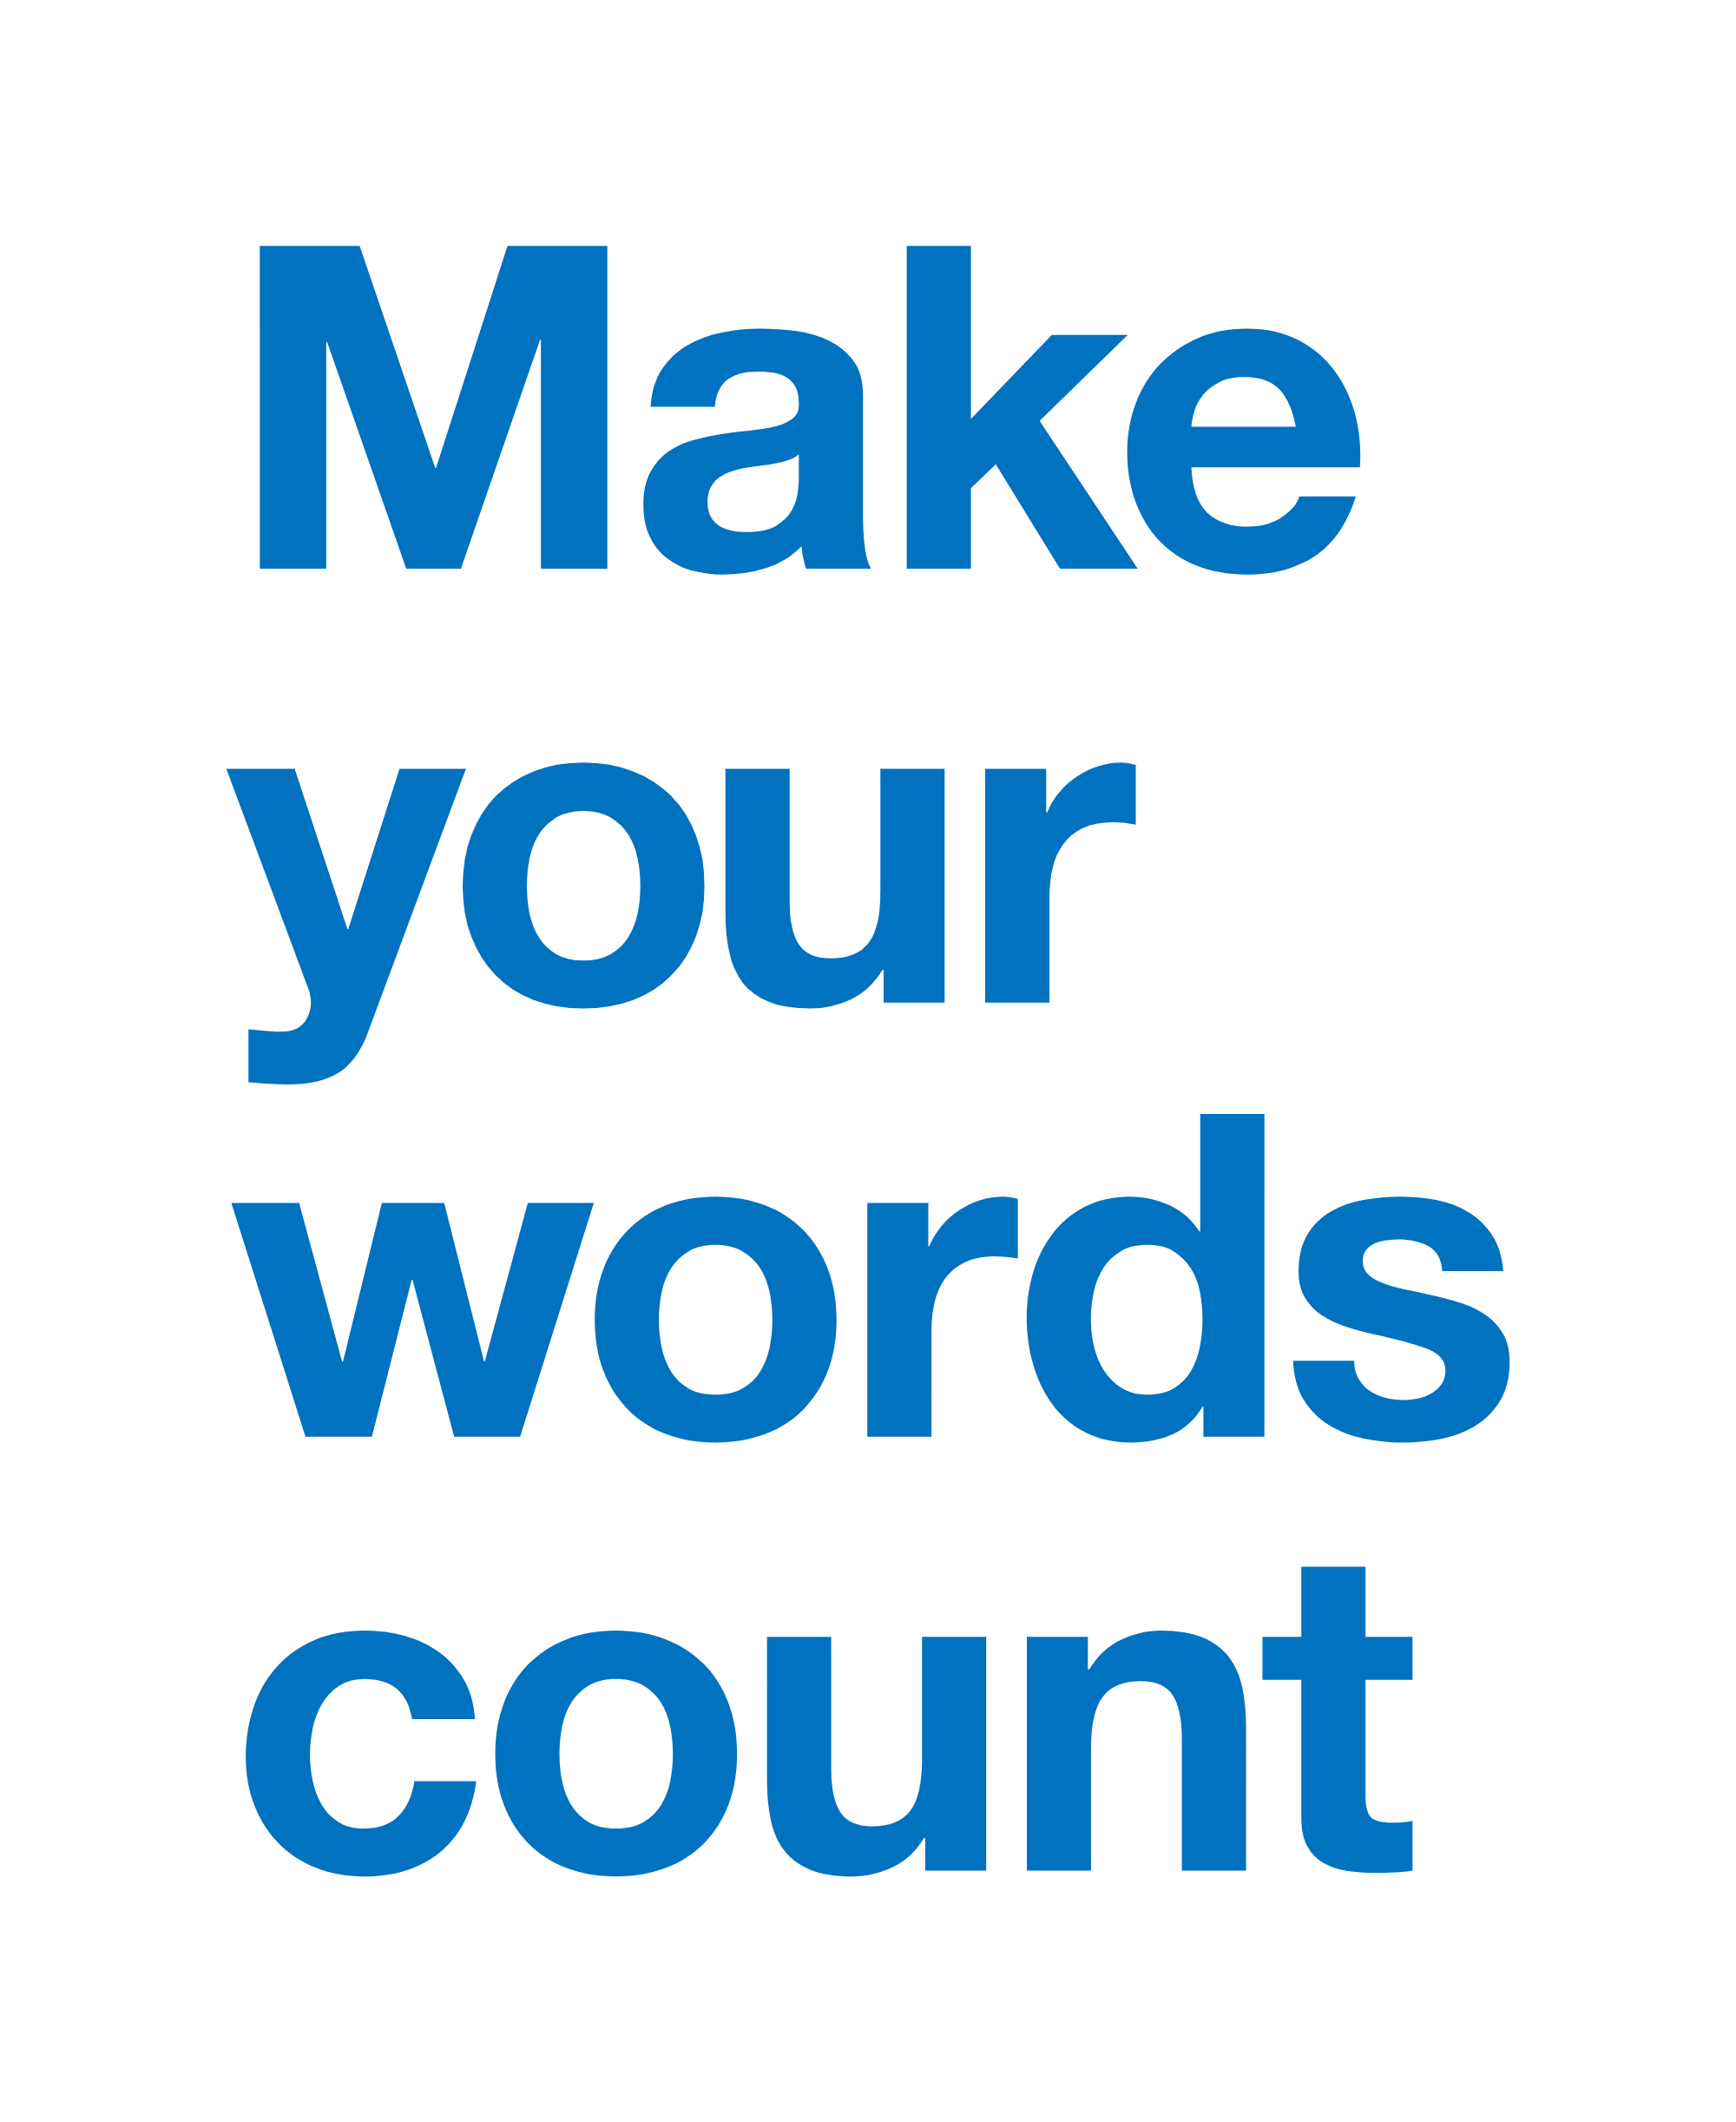 govdesign 'make your words count' poster | UK Government Design team